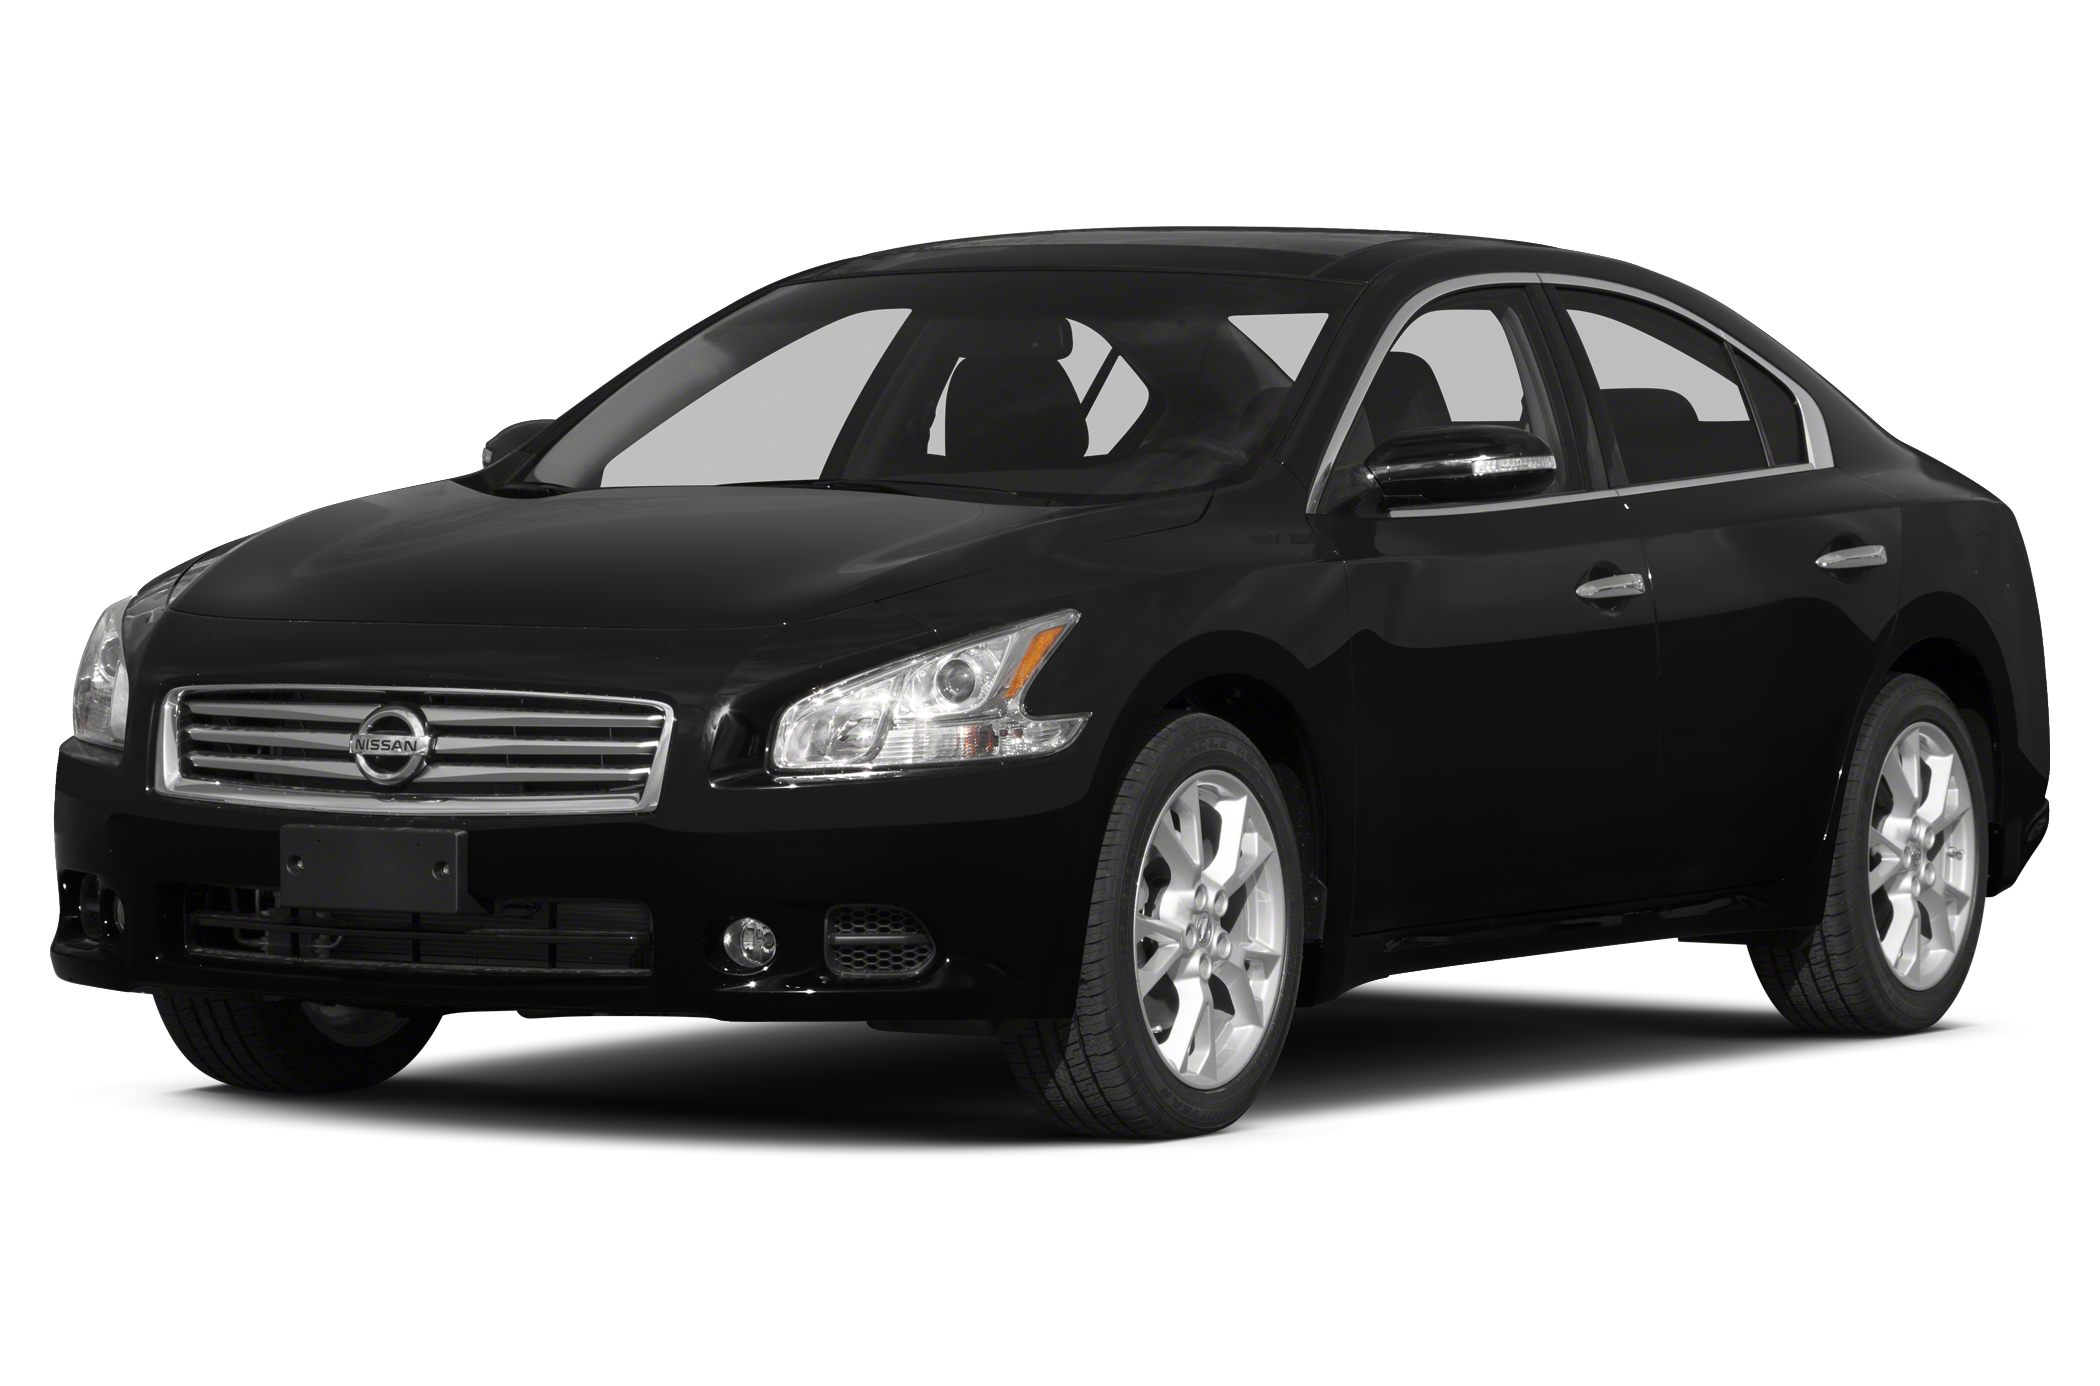 2014 Nissan Maxima SV Sedan for sale in Alexandria for $27,555 with 0 miles.